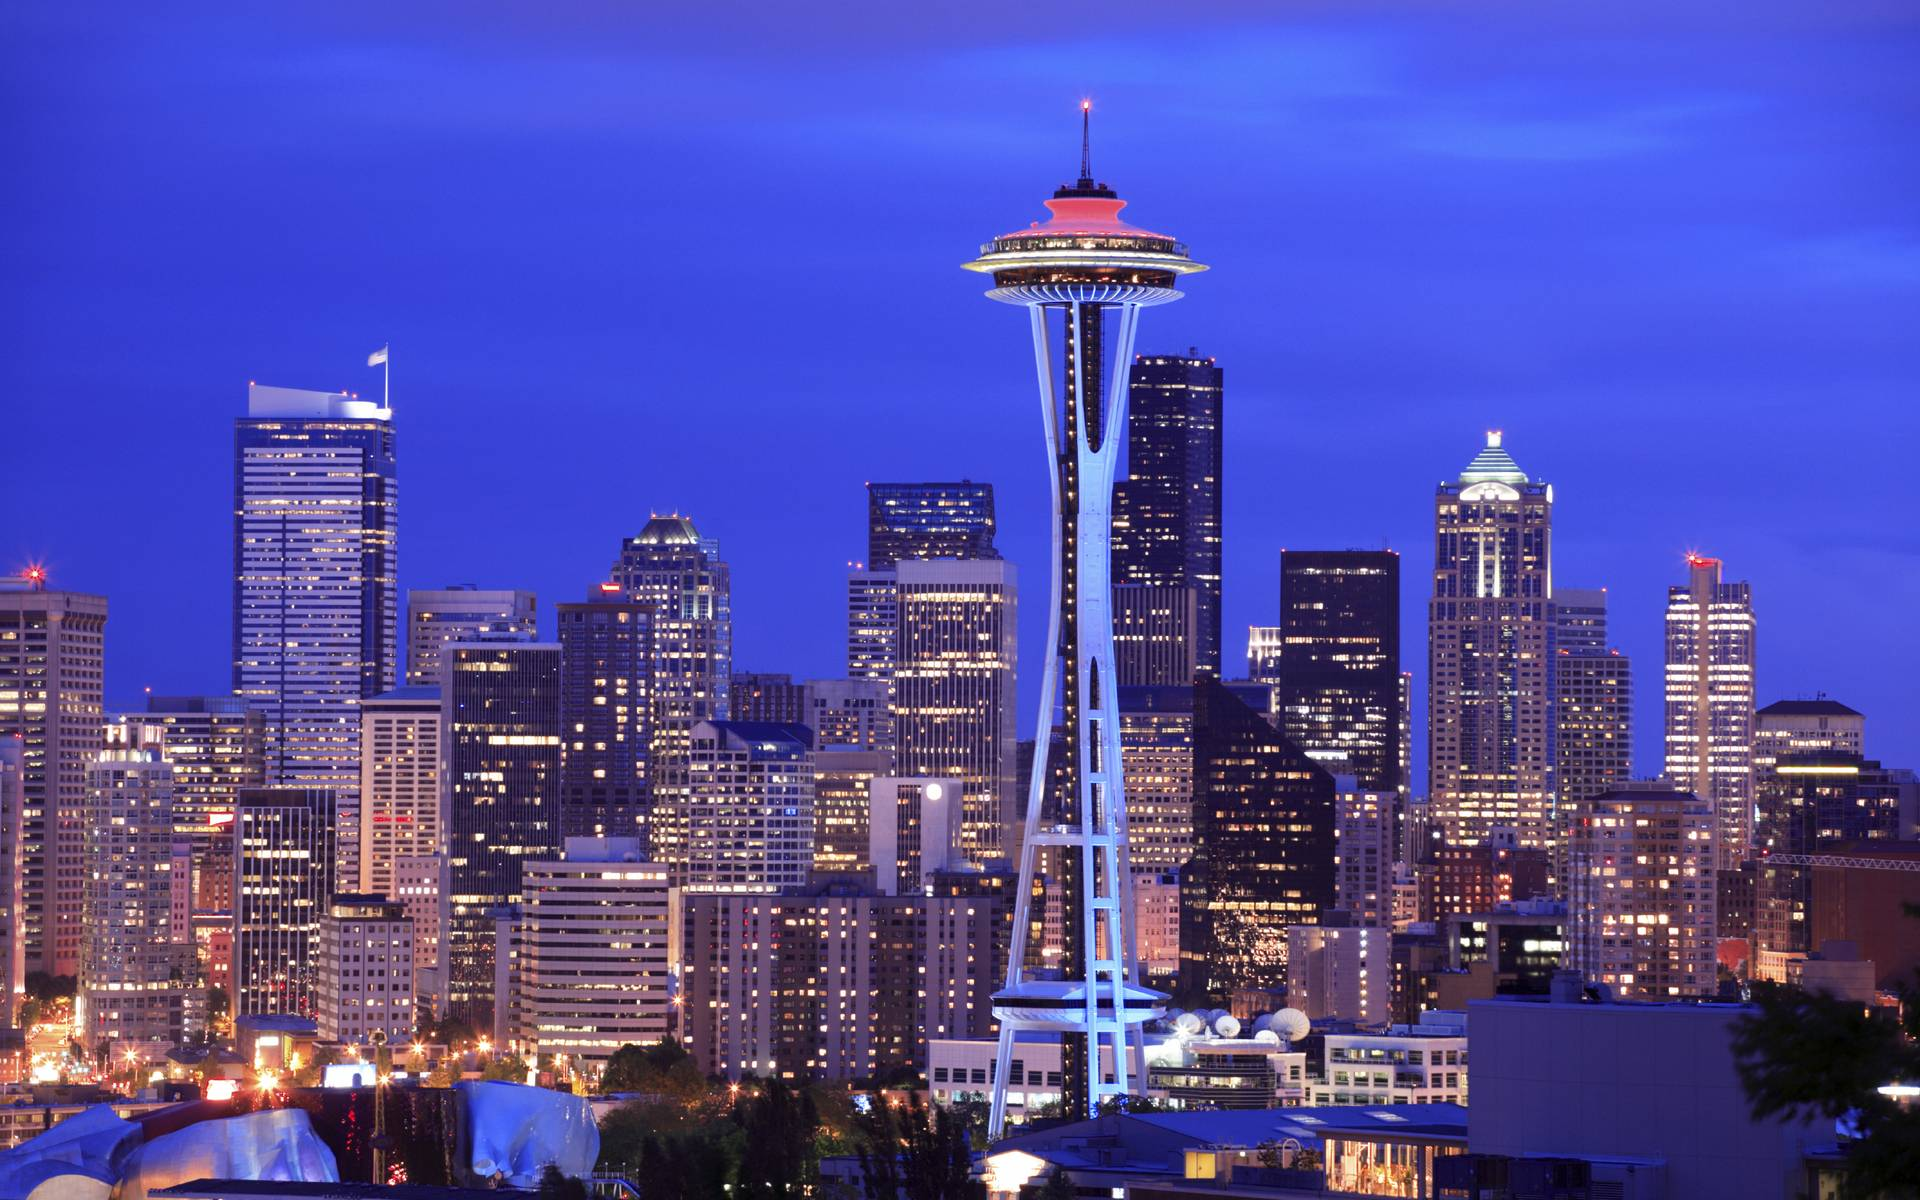 Seattle HD Wallpaper | Seattle Space Needle Images | Cool Wallpapers